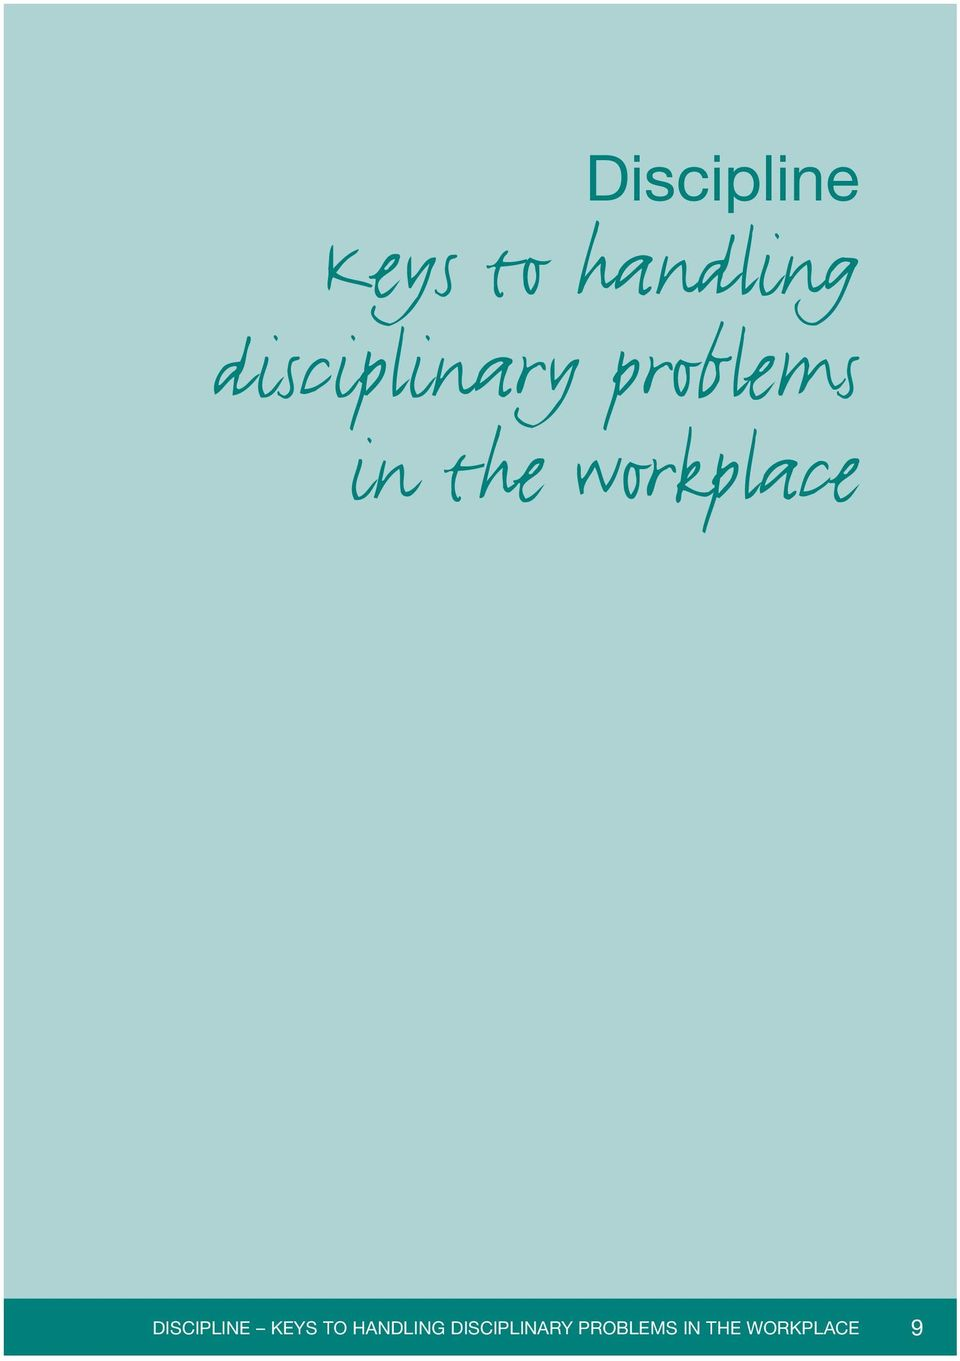 workplace DISCIPLINE KEYS TO